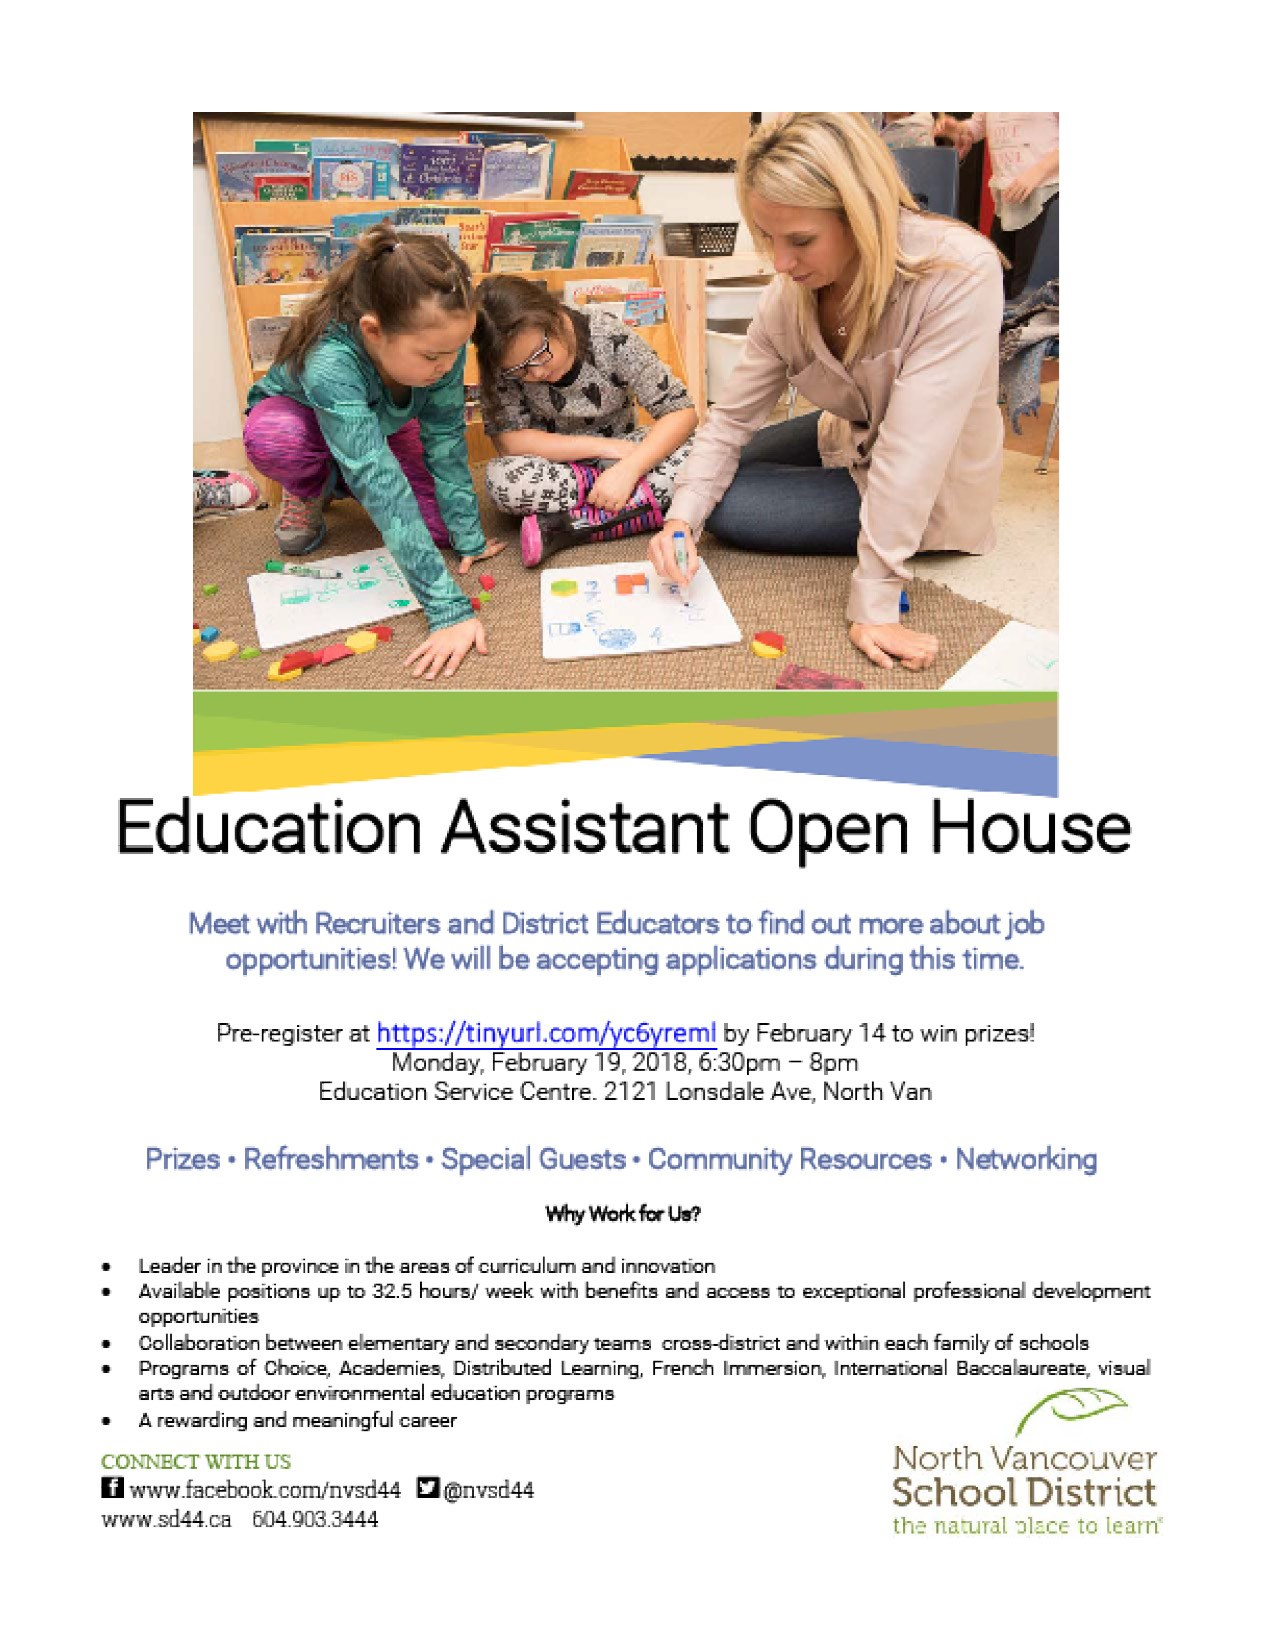 Education Assistant OPEN HOUSE POSTER JPEG2.jpg